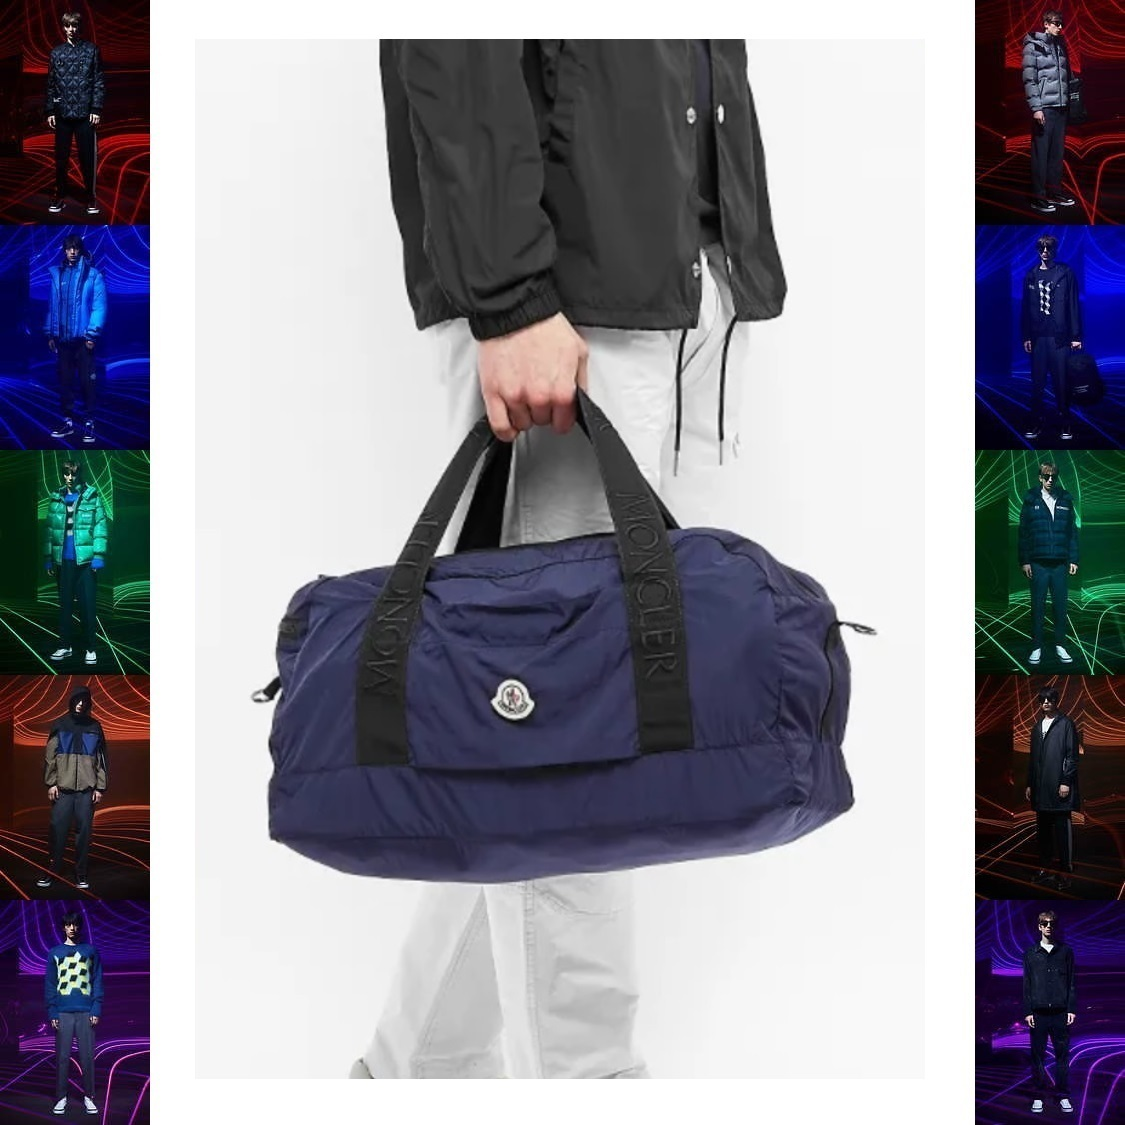 20SS 新作 MONCLER ロゴ ナイロン 2way ナイロン バッグ 紺 (MONCLER/ボストンバッグ) 52114429